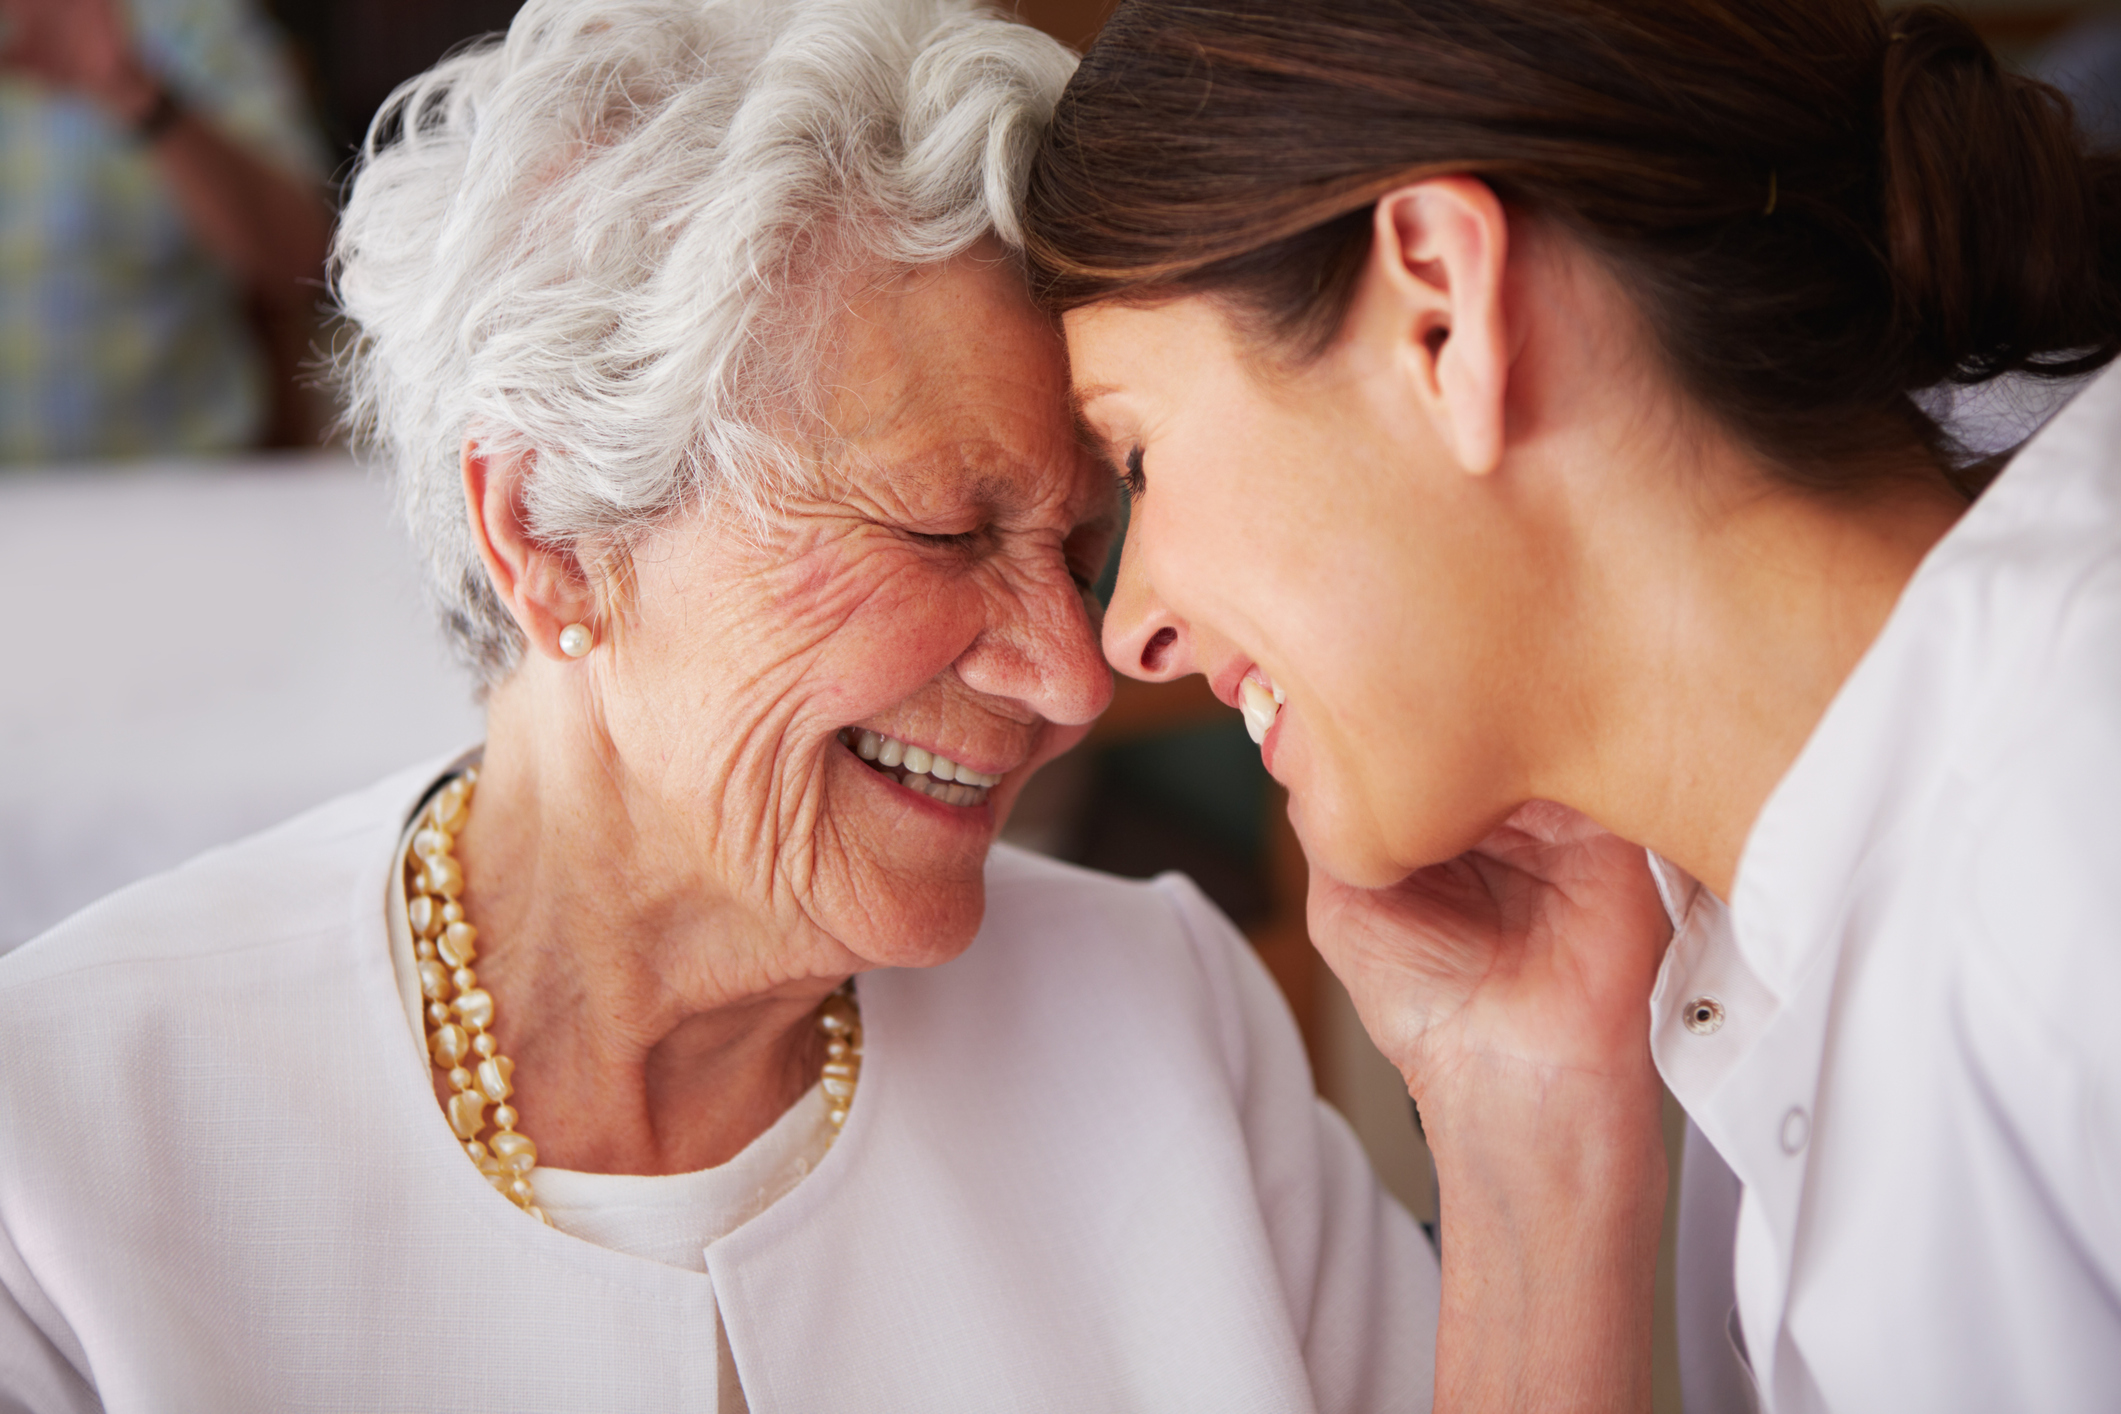 An elderly woman affectionately thanking her nurse